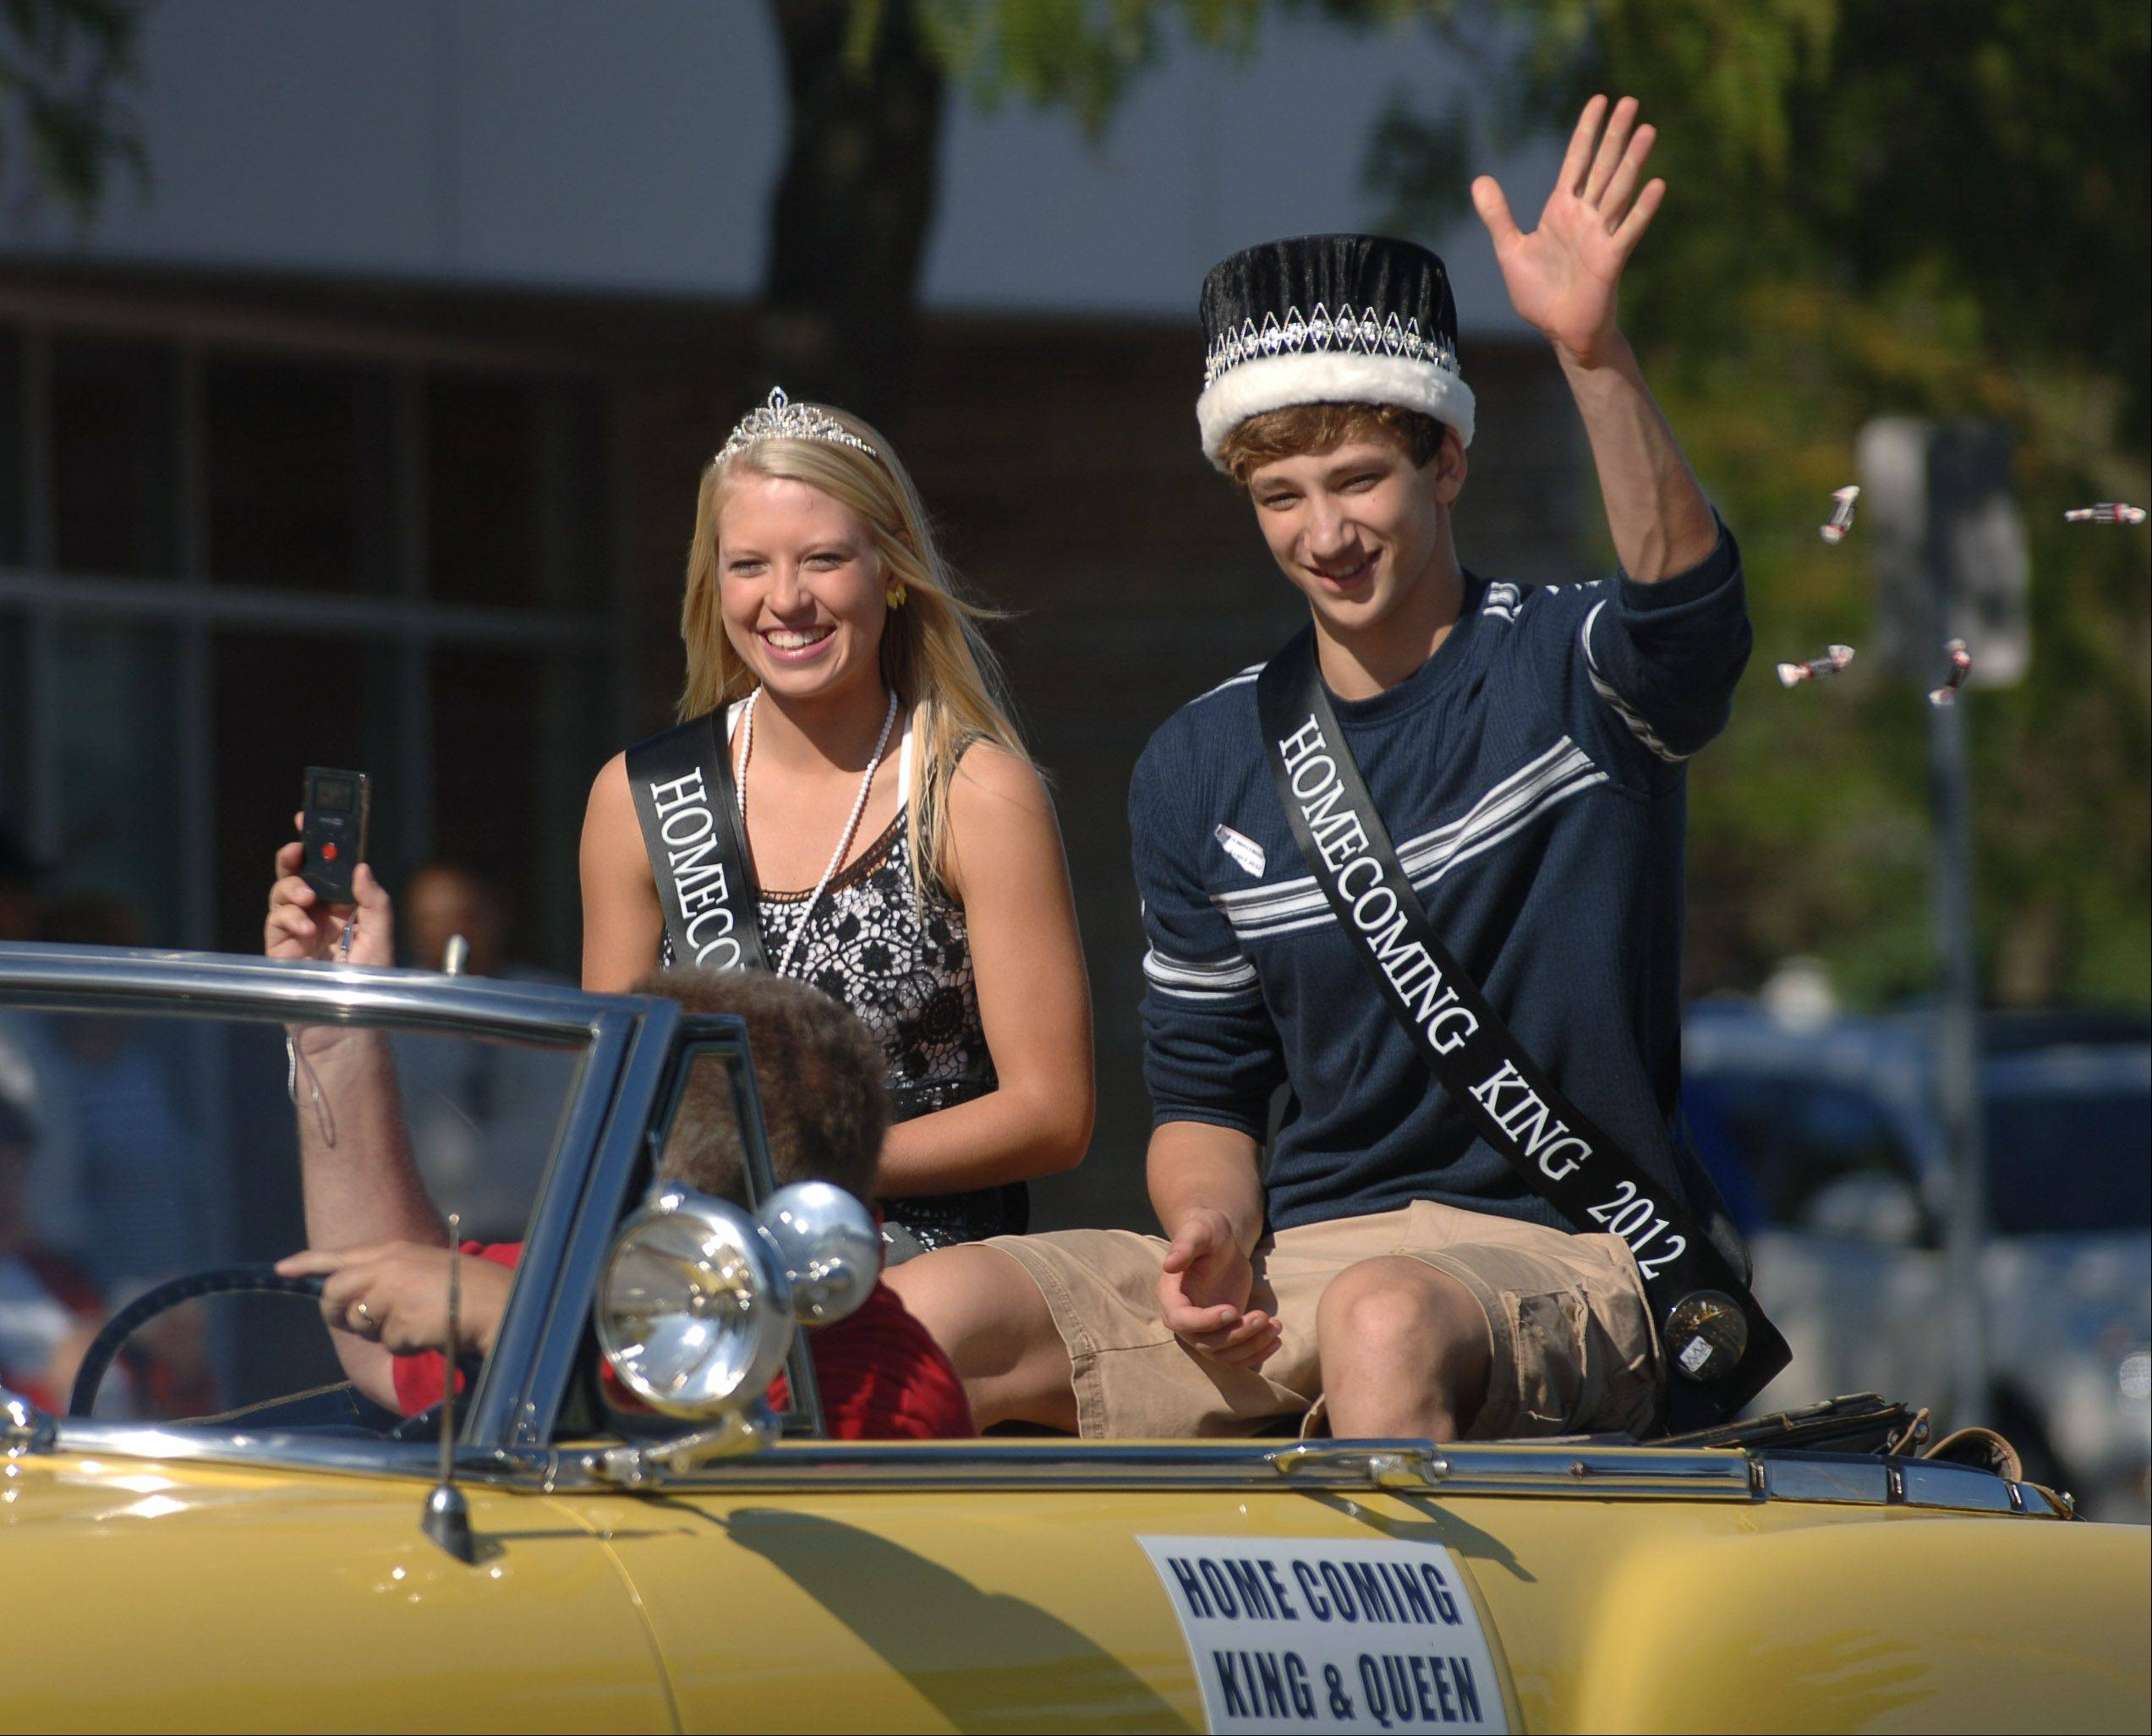 Mundelein High School's homecoming queen Chloe Peterson of Wauconda, and king Connor Black of Mundelein, toss candy to the crowd during the Homecoming parade through downtown Mundelein.